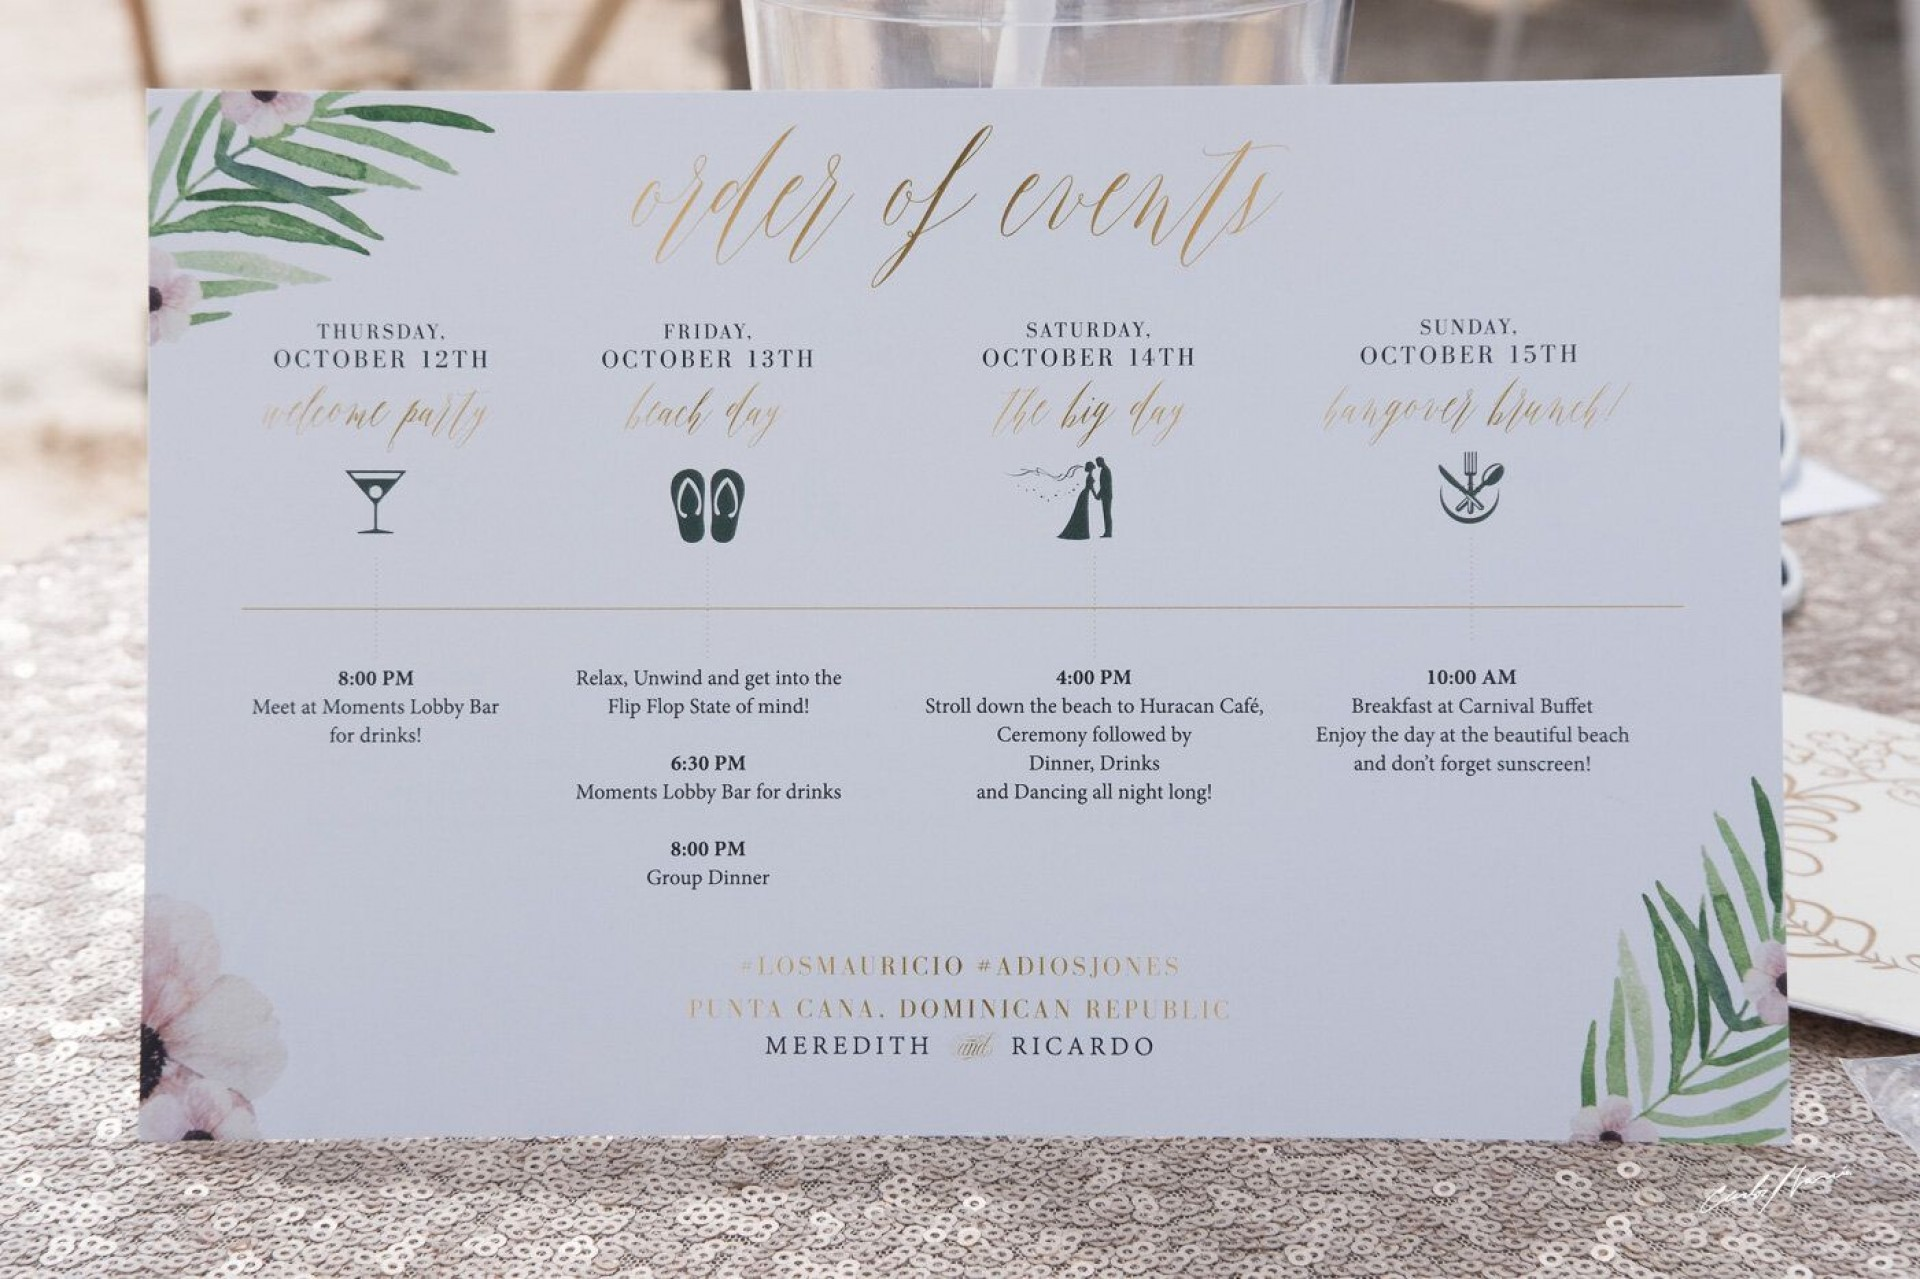 009 Imposing Destination Wedding Welcome Letter Template Design  And Itinerary1920